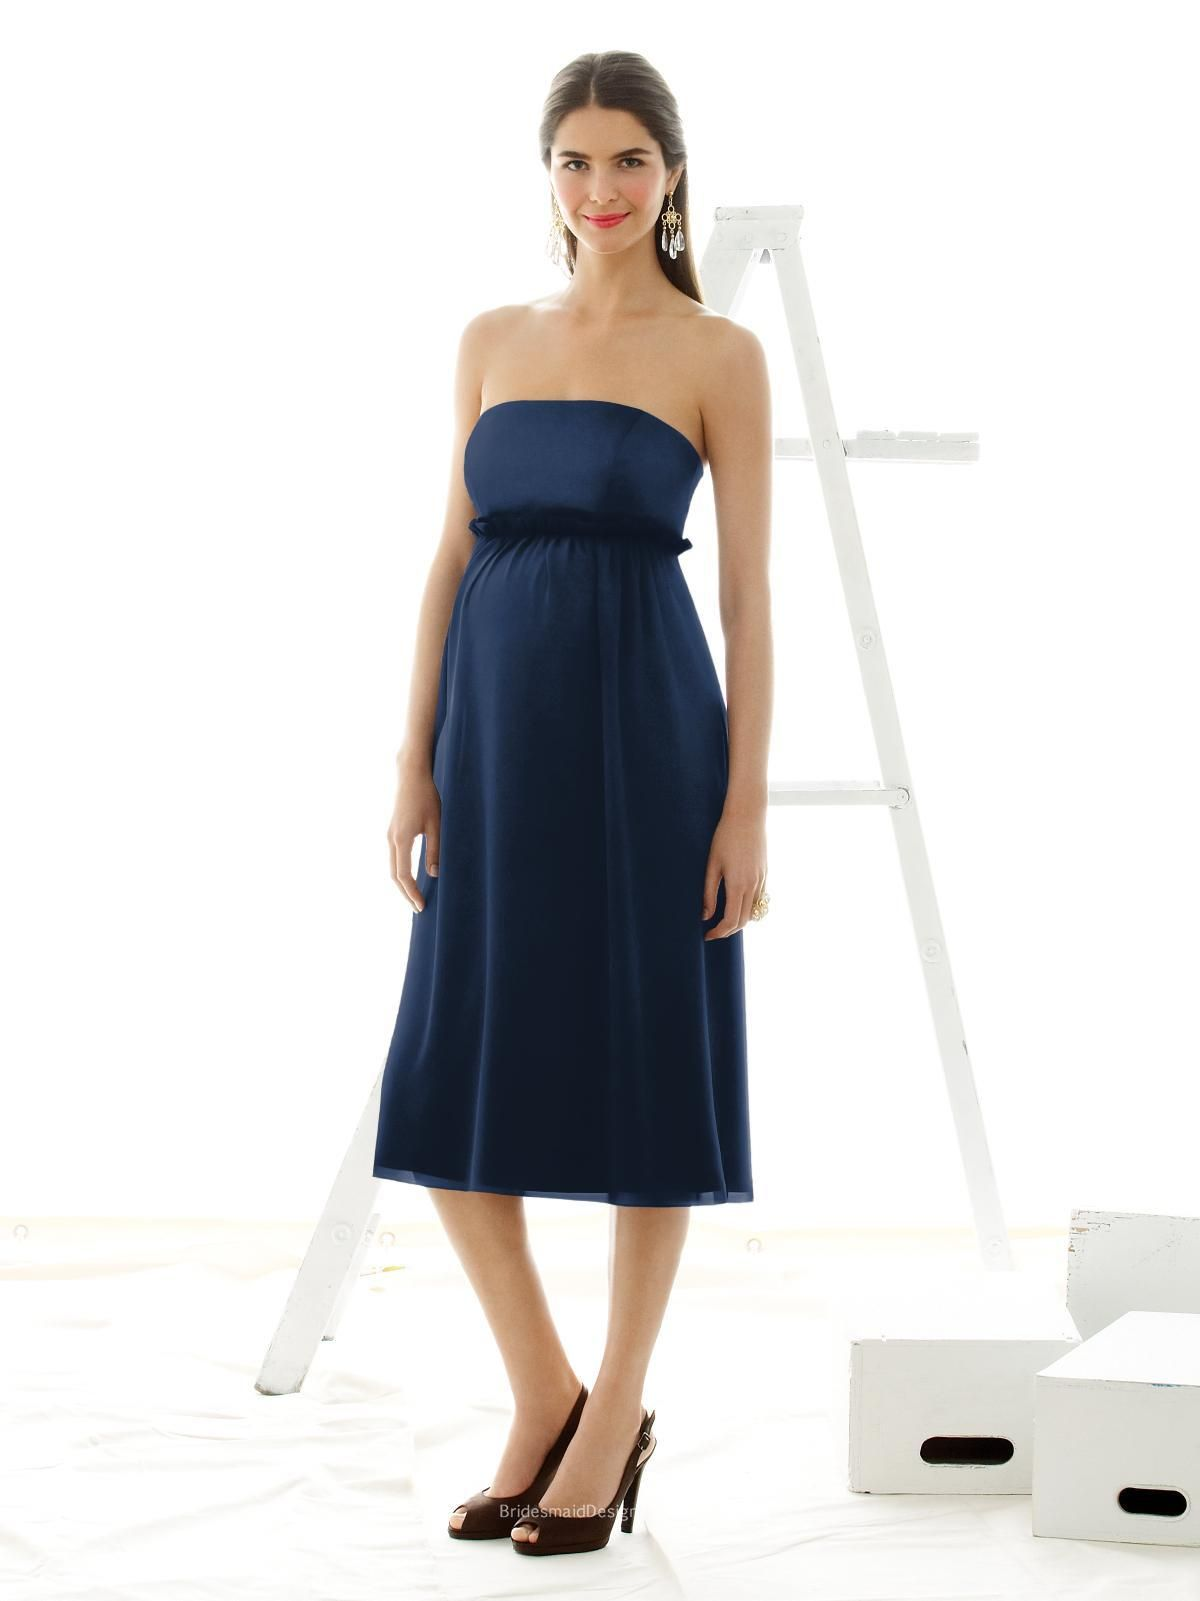 Perfect navy blue tea length sleeveless maternity bridesmaid dress perfect navy blue tea length sleeveless maternity bridesmaid dress has duchess satin bodice nu ombrellifo Images